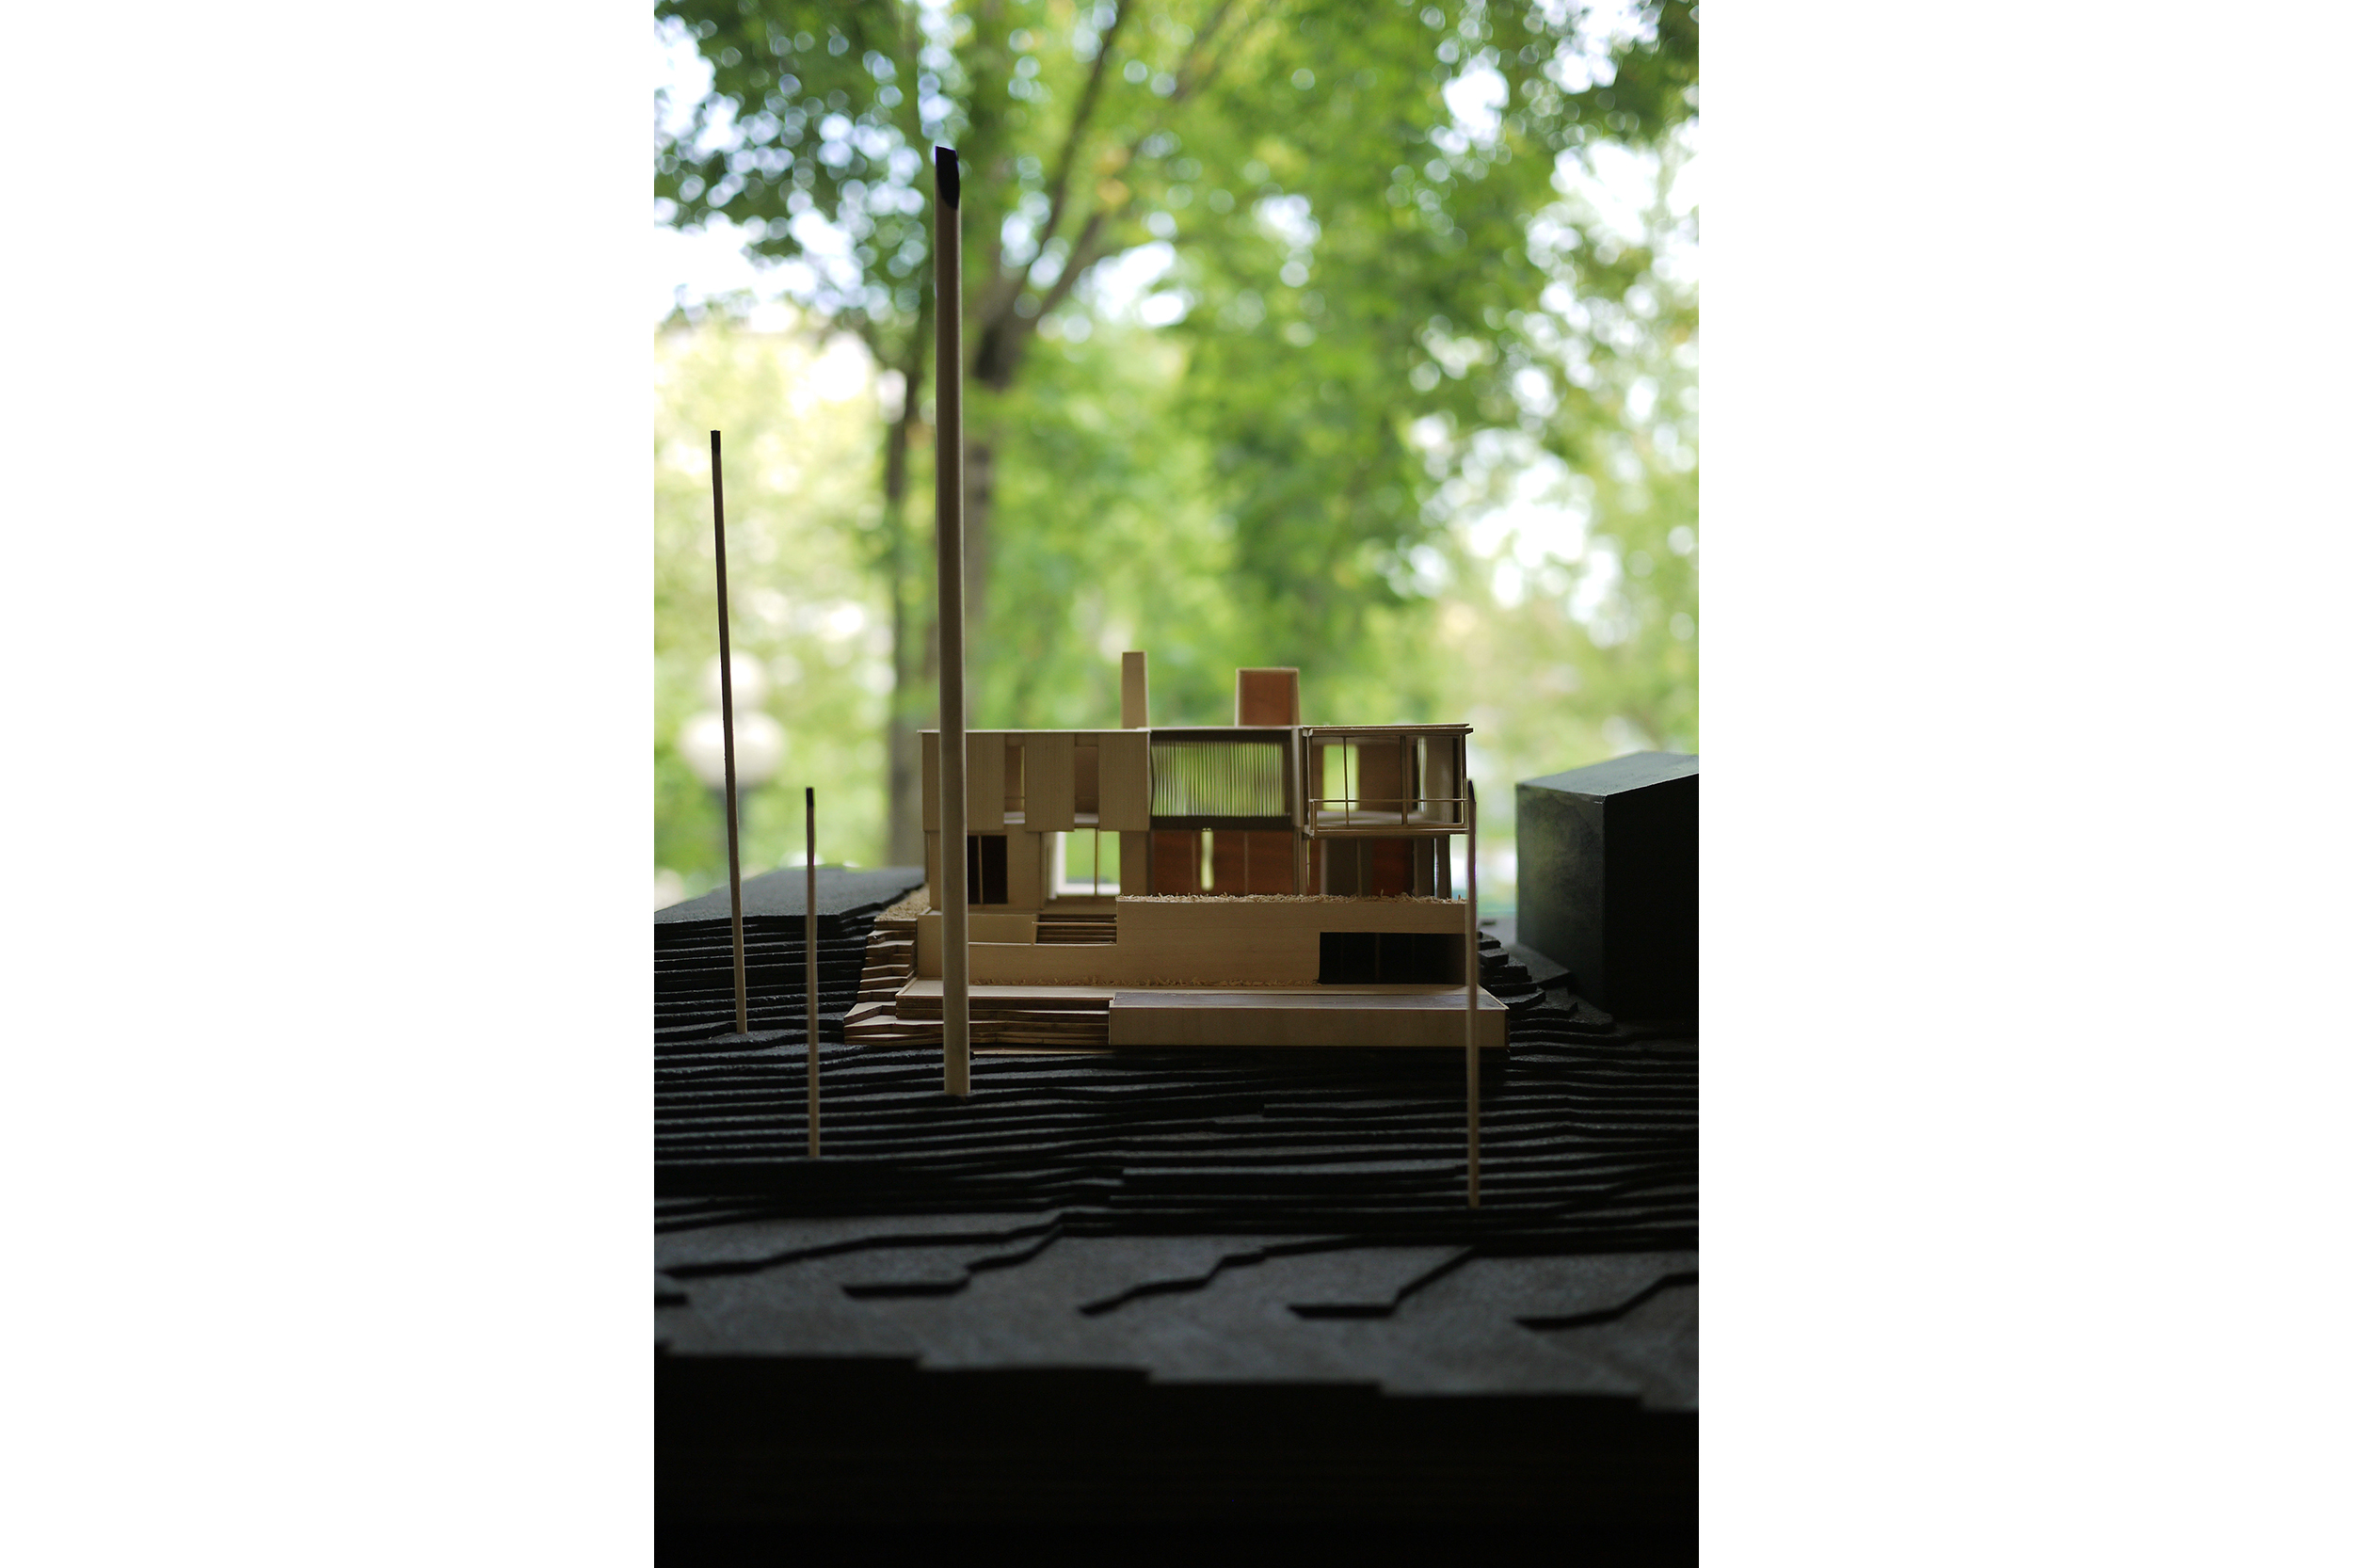 goCstudio_Sound House_model South.jpg